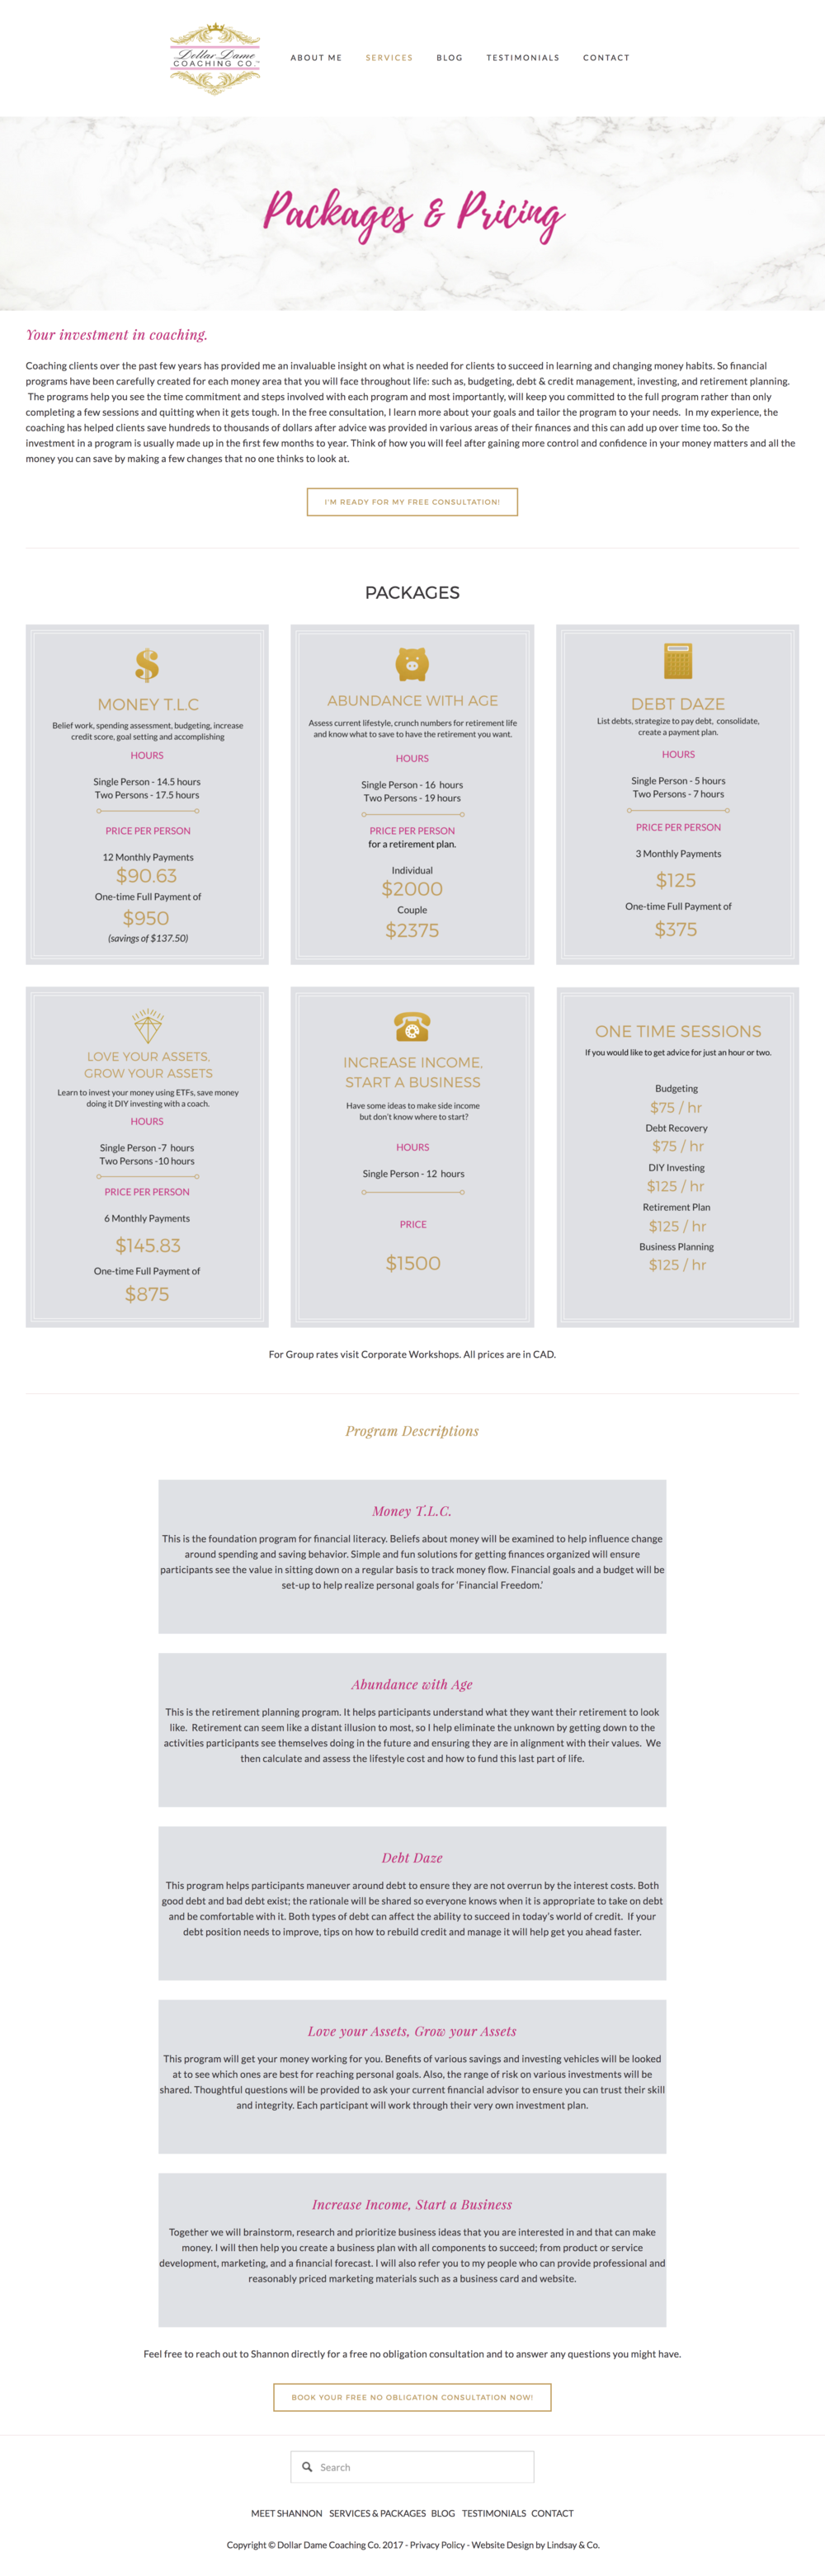 Squarespace website design for Dollar Dame Packages and Pricing Lindsay & Co